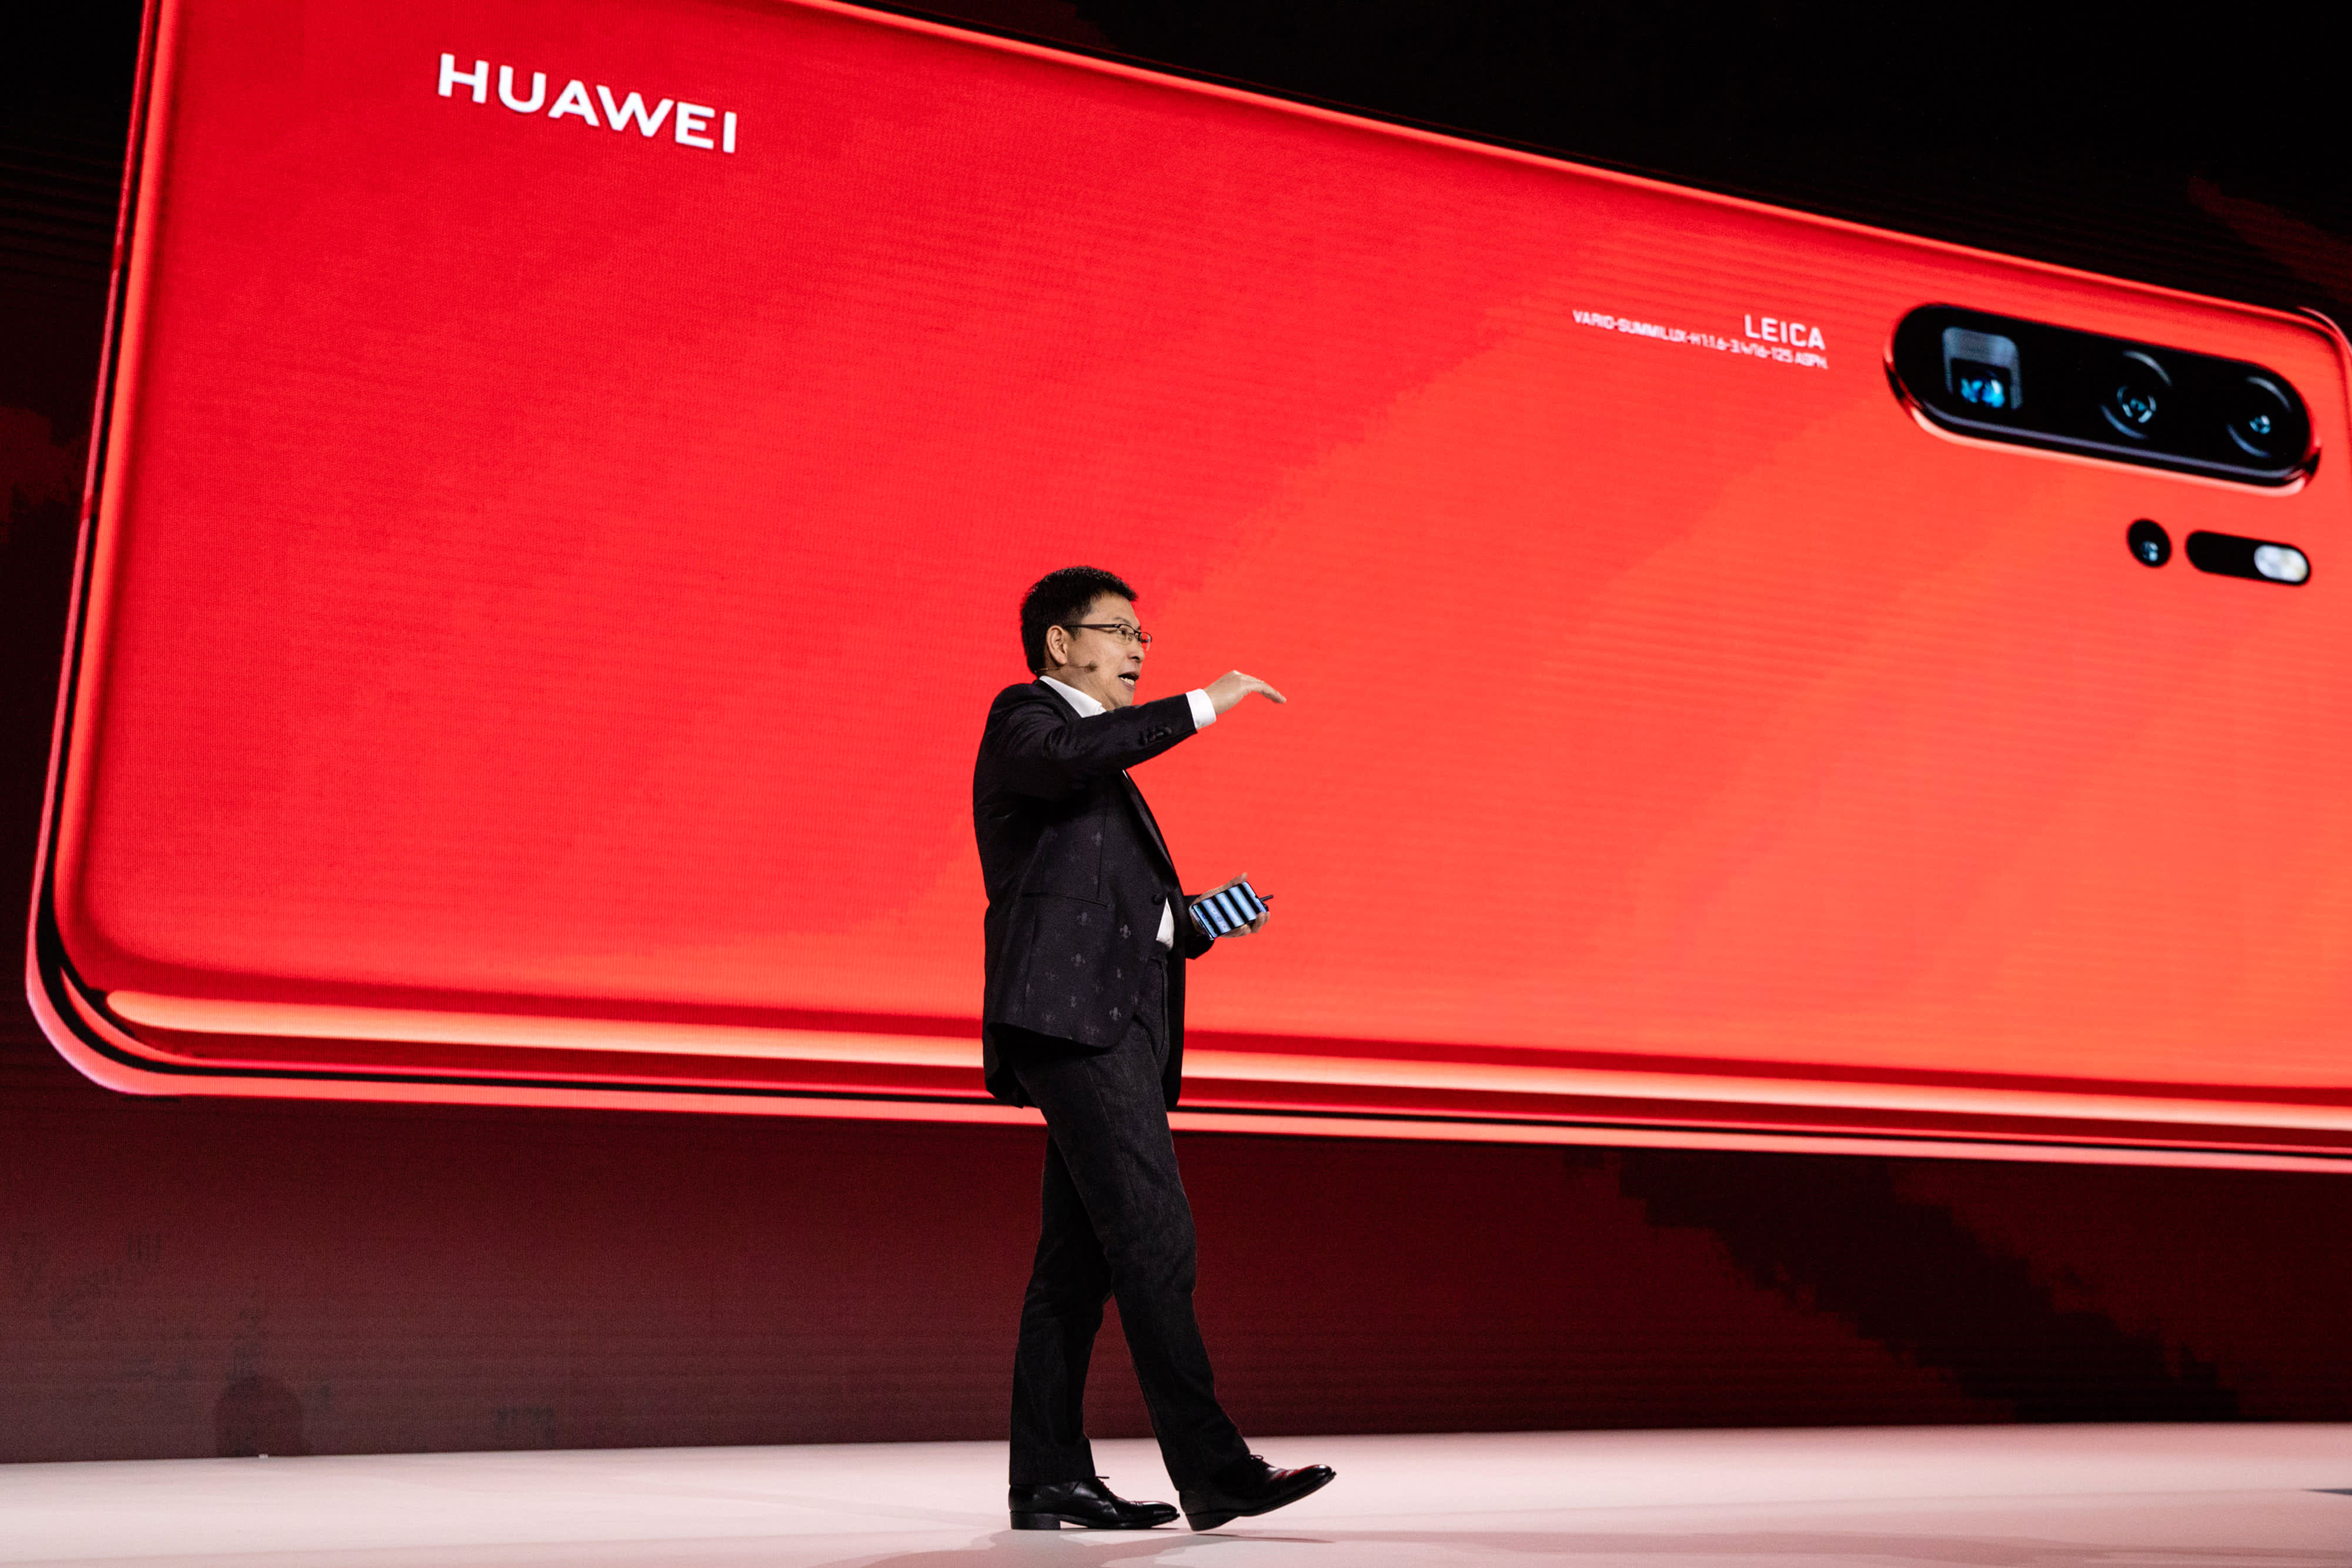 Richard Yu, chief executive officer of Huawei Technologies Co., speaks as he presents the P30 series smartphone during a Huawei Technologies Co. launch event in Paris, France, on Tuesday, March 26, 2019.